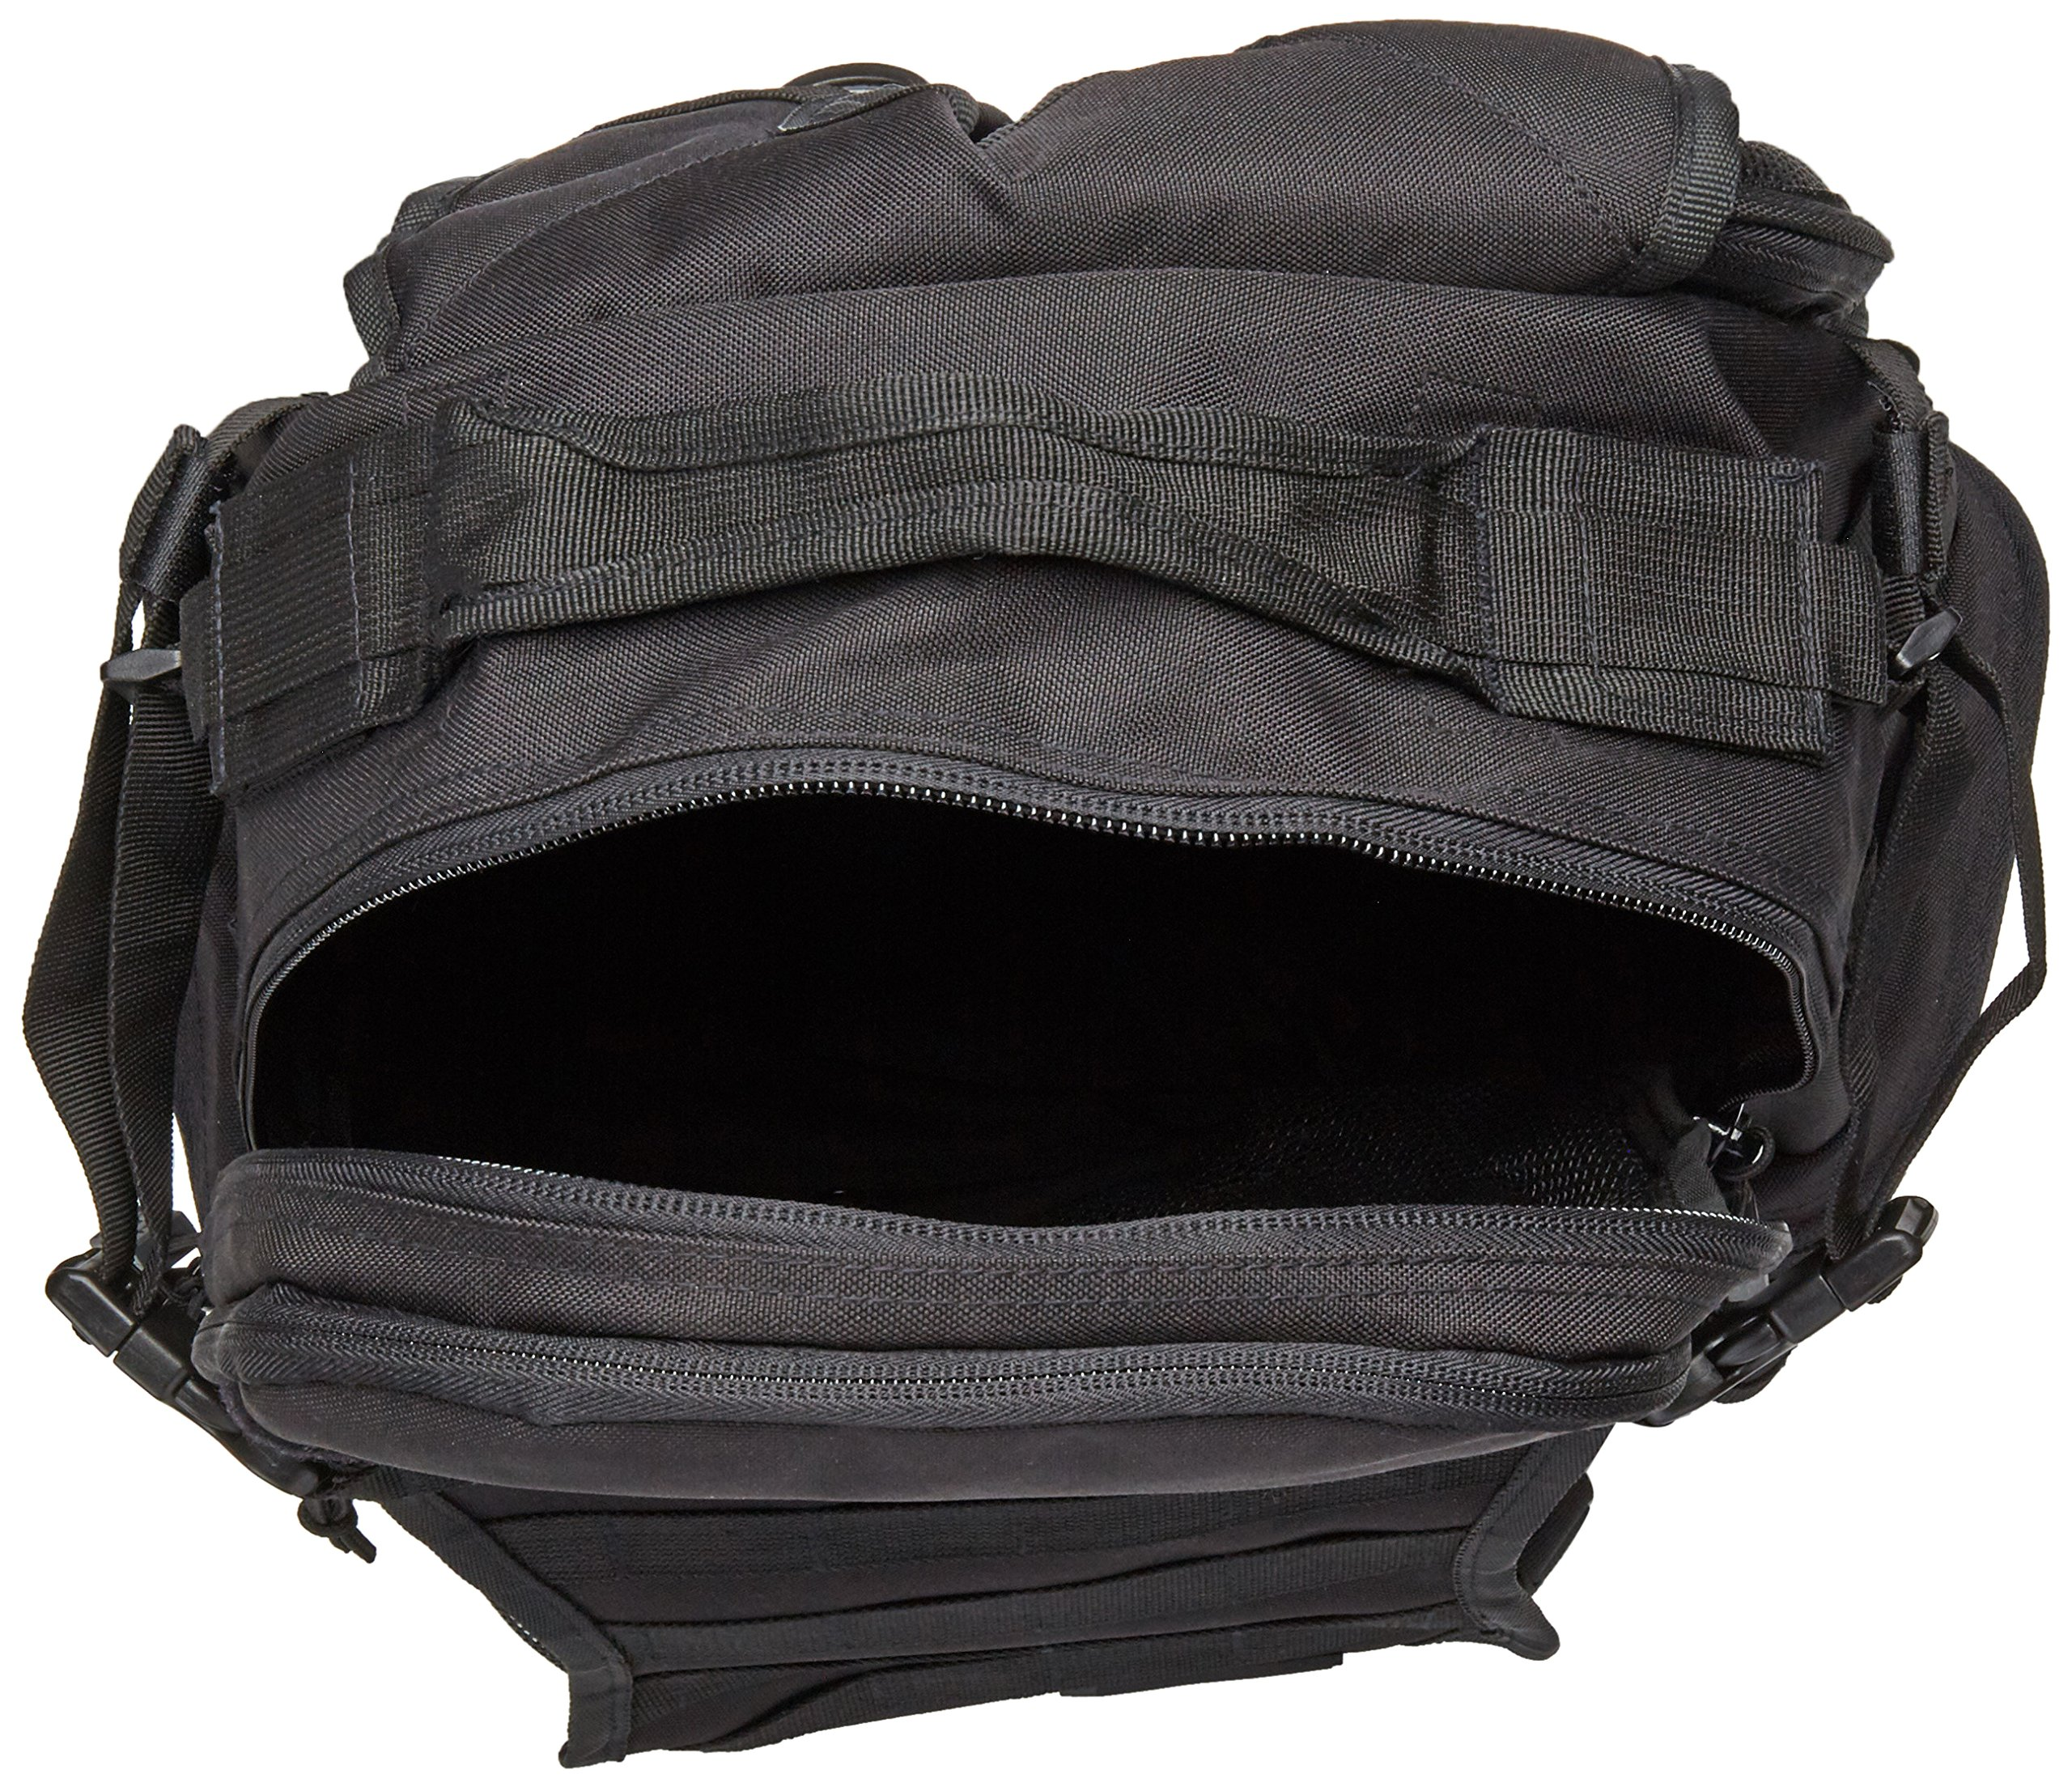 SOG-Specialty-Knives-amp-Tools-Opord-Tactical-Day-Pack-39-1-Liter-Storage thumbnail 4